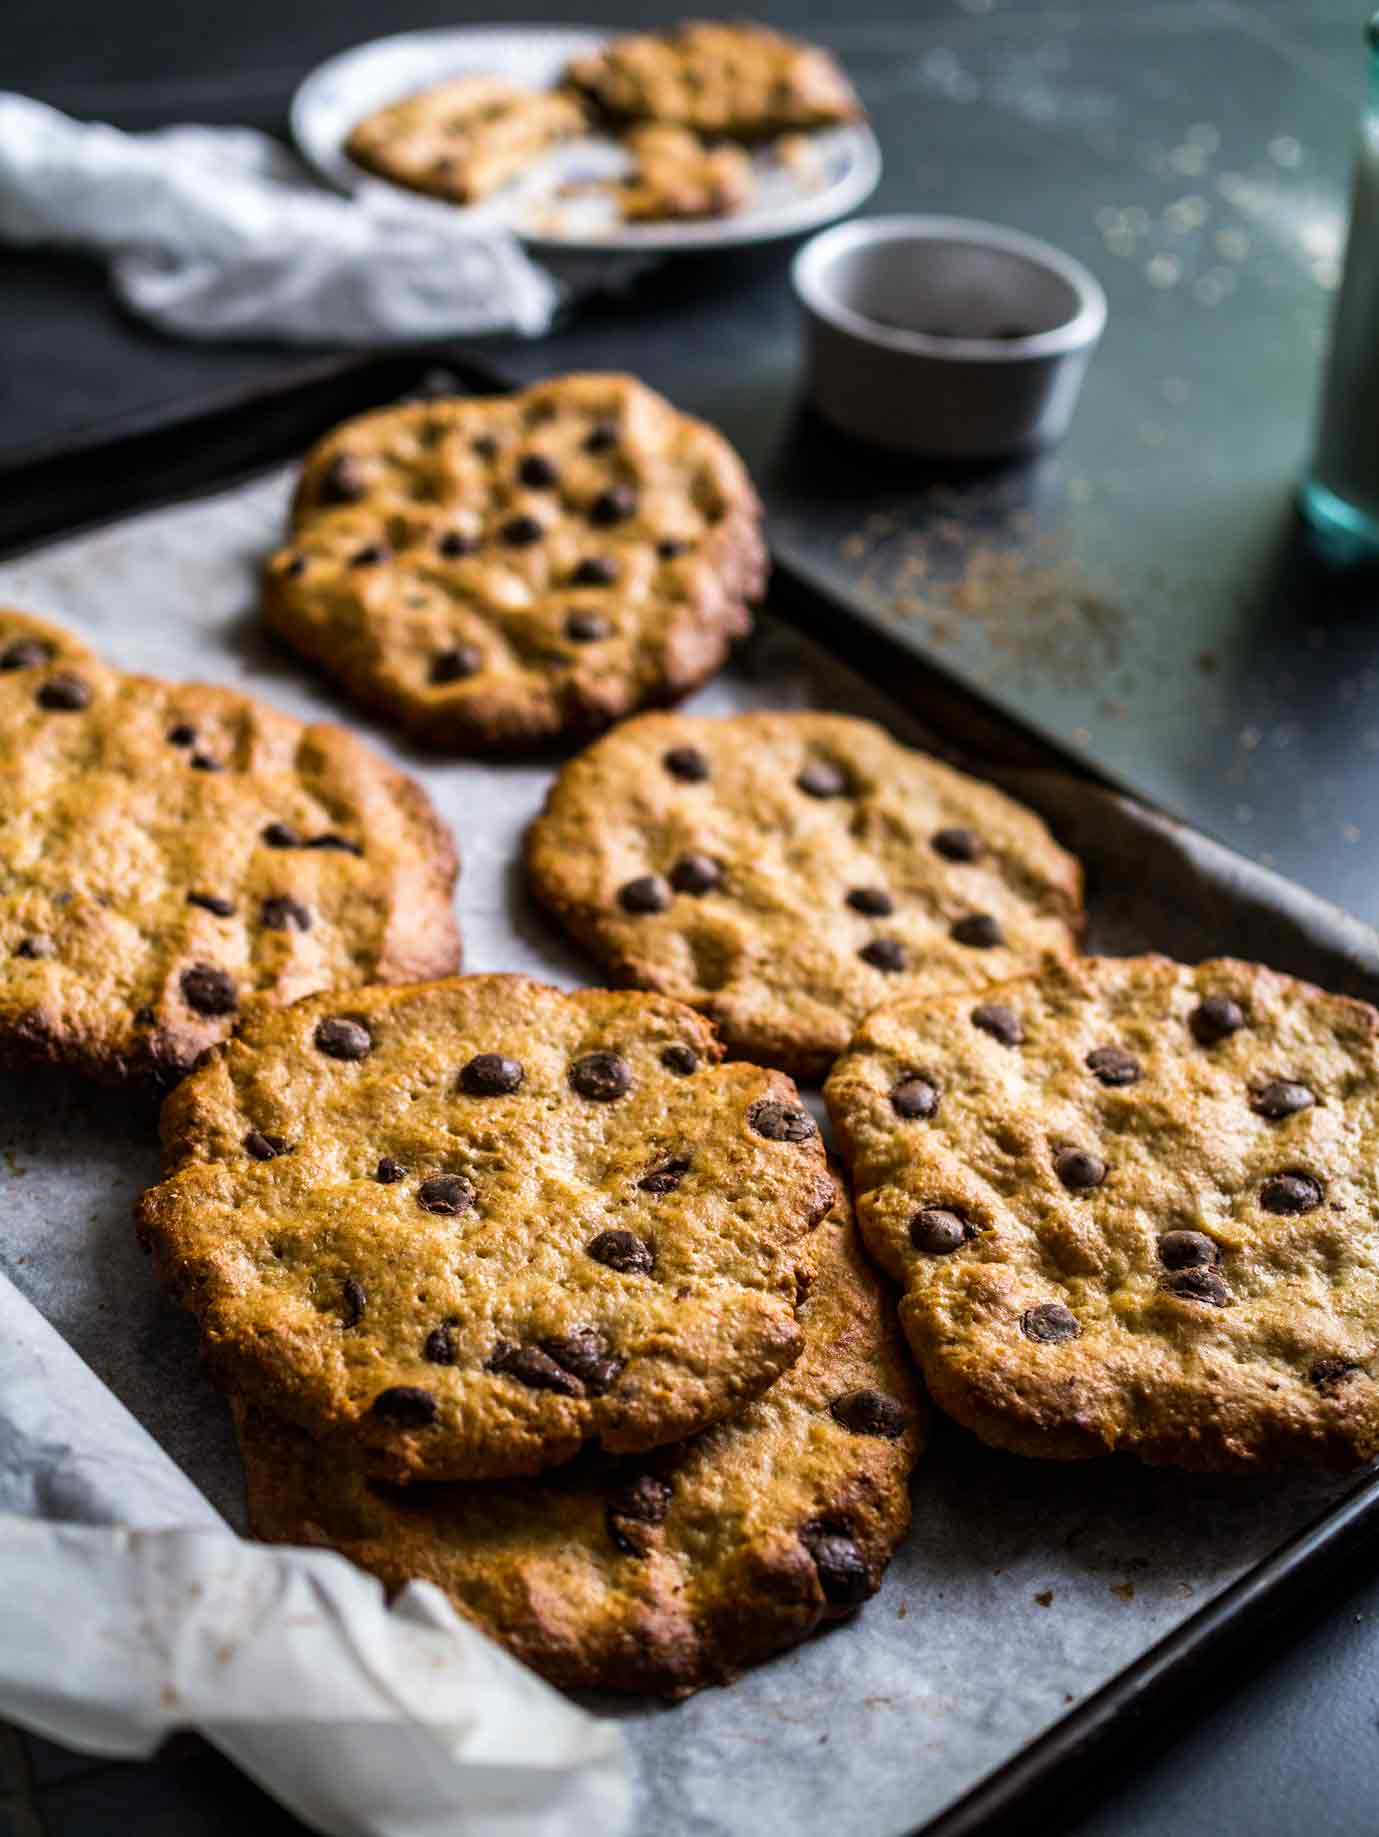 These soft and gooey Peanut butter + Chocolate Chip Cookies are soft, indulgent, easy to make and 100% vegan! No obscure ingredients either.  #recipes #cookie #easy #recipe #choc #oats #chewy #crunchy #oatmeal #eggless